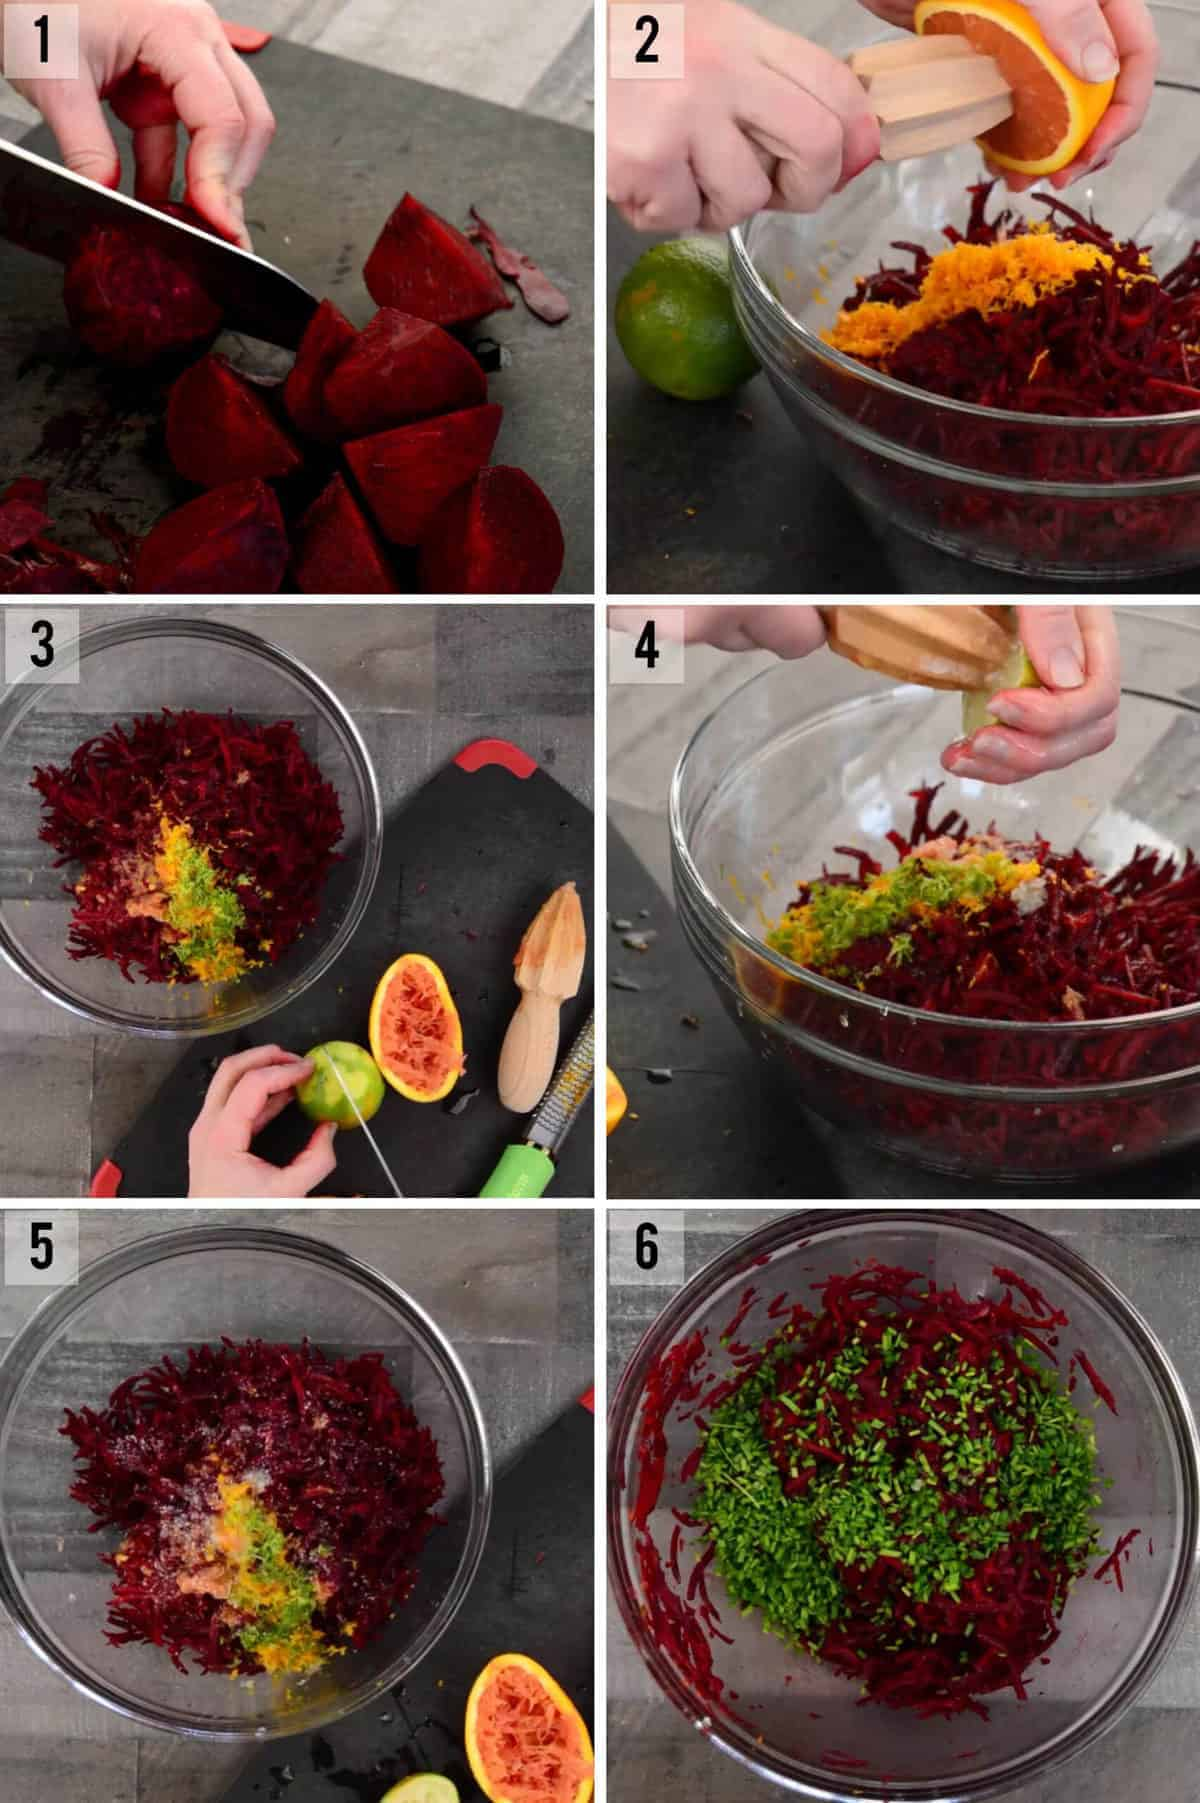 process photos of how to make raw beet salad with shredded beets and citrus